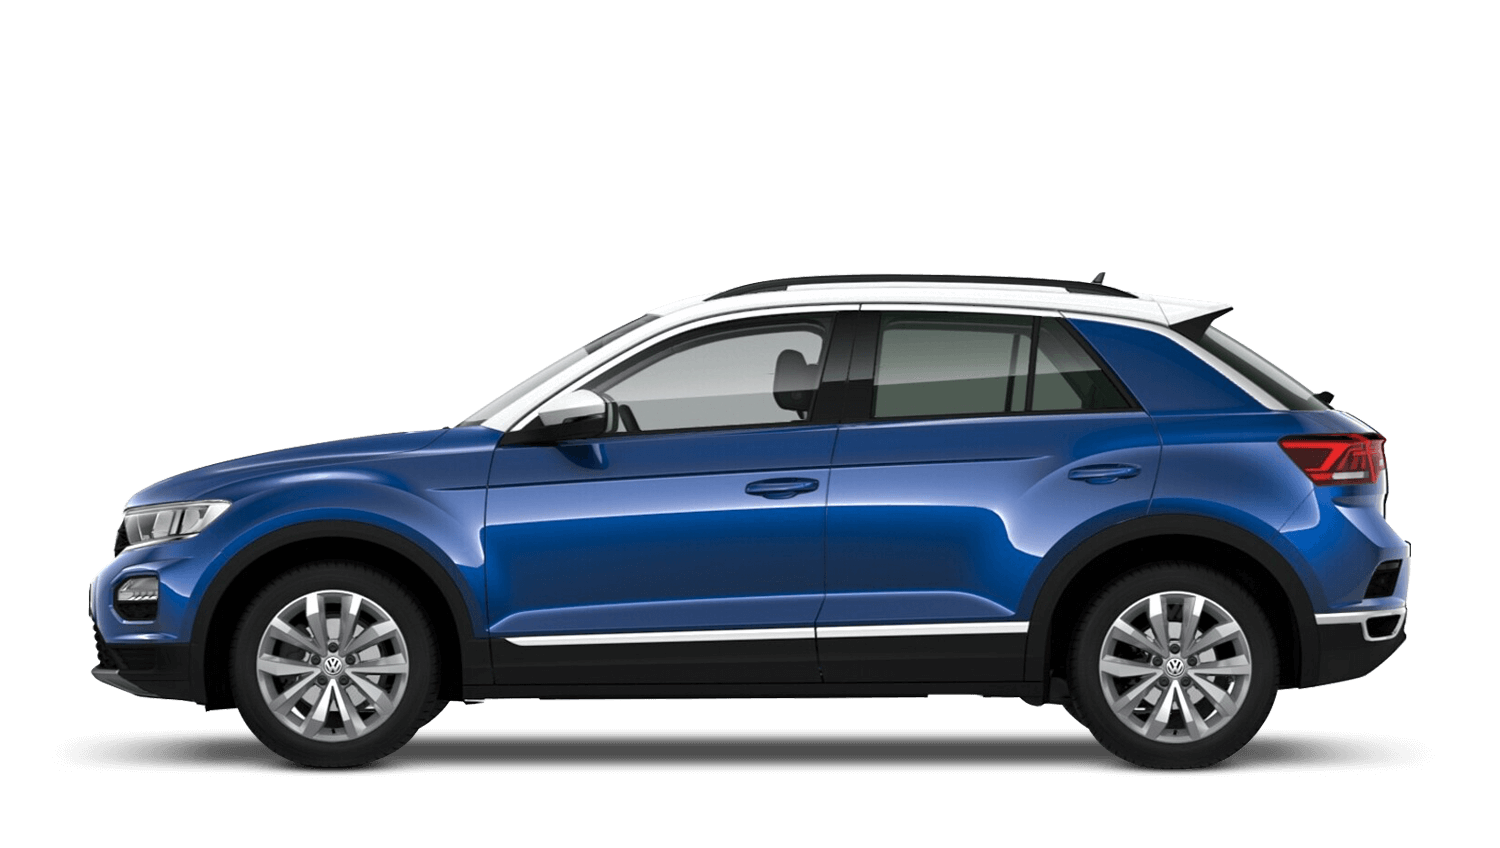 Atlantic Blue with Pure White Roof (Metallic / Pearl) Volkswagen T Roc